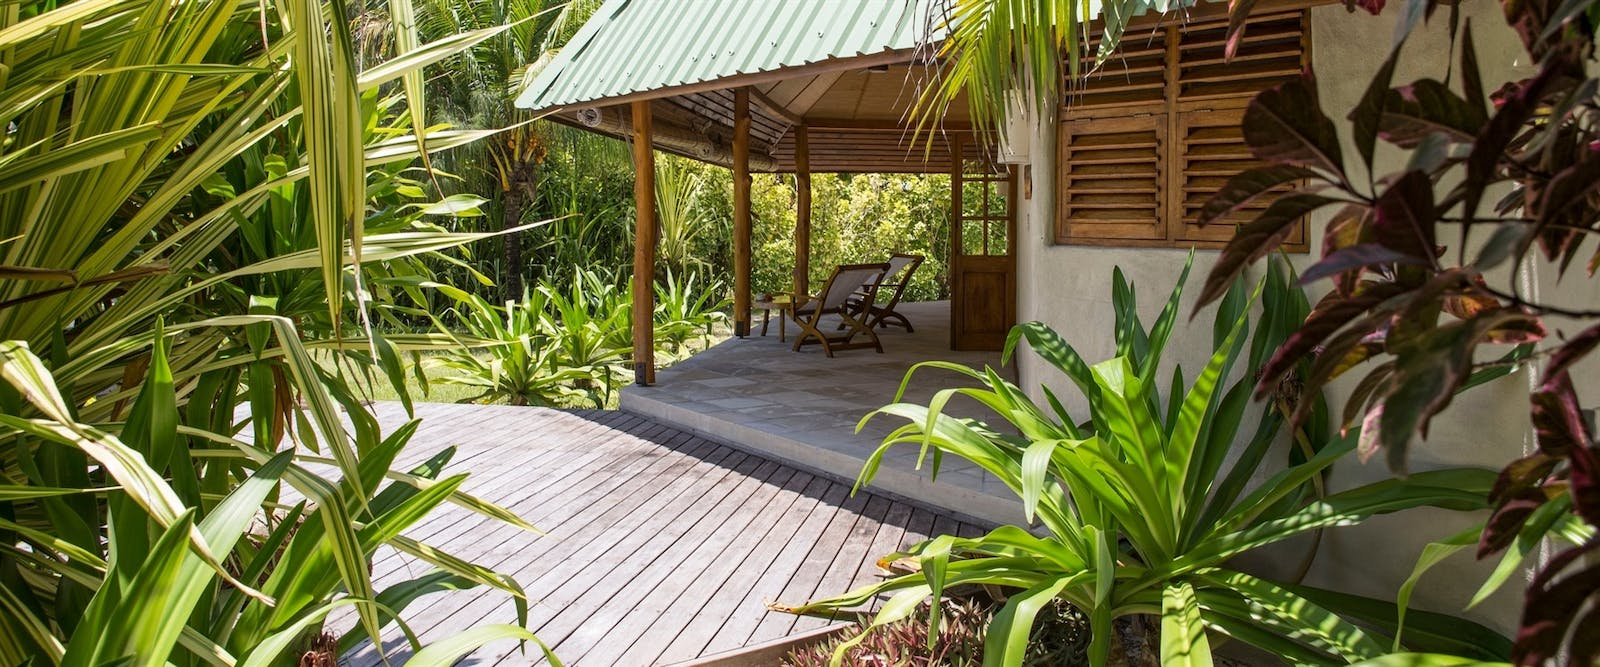 Beach Cottage Exterior at Denis Private Island, Seychelles